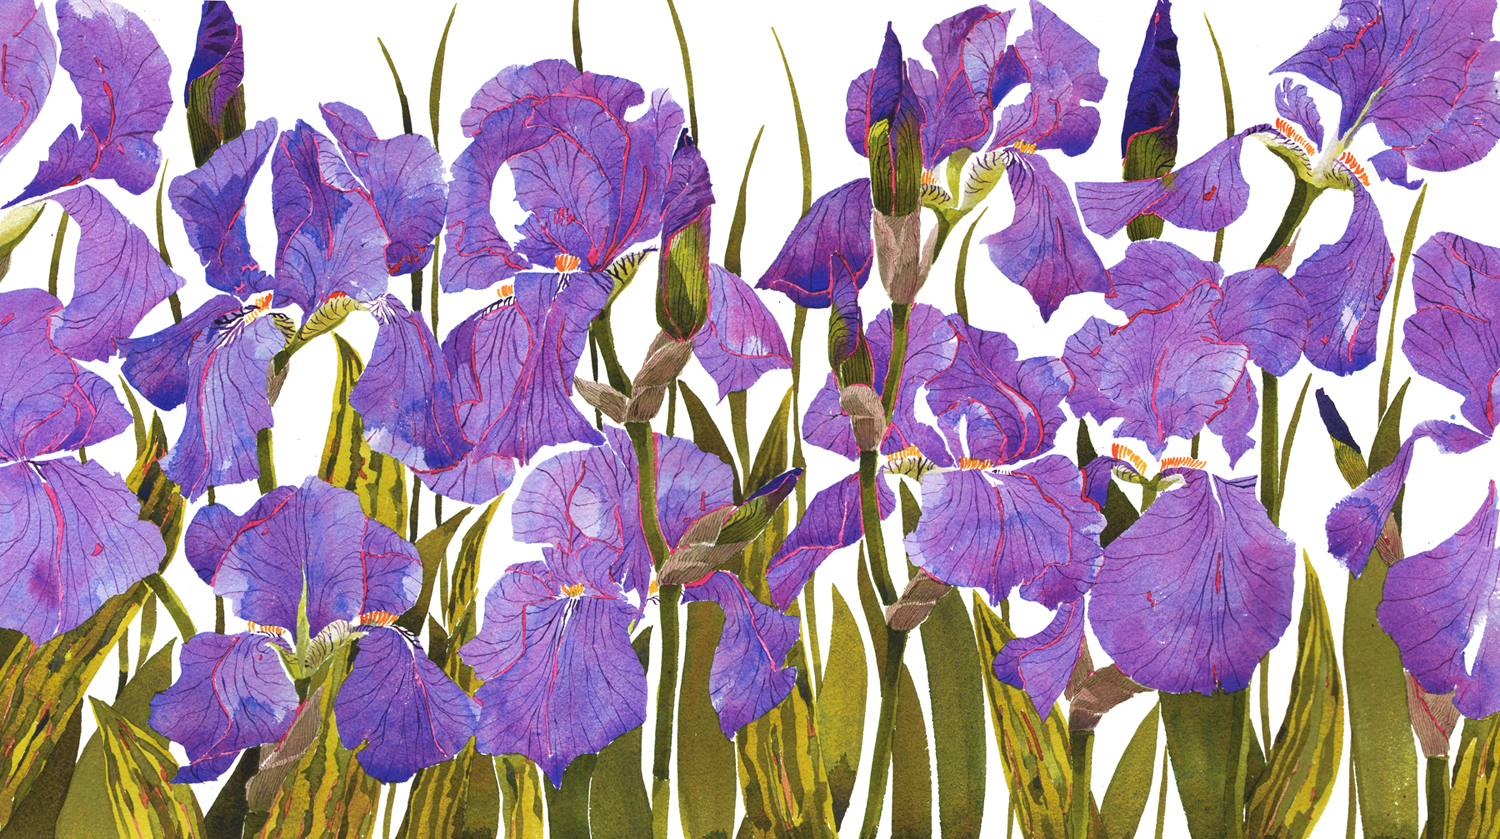 Bearded Irises image